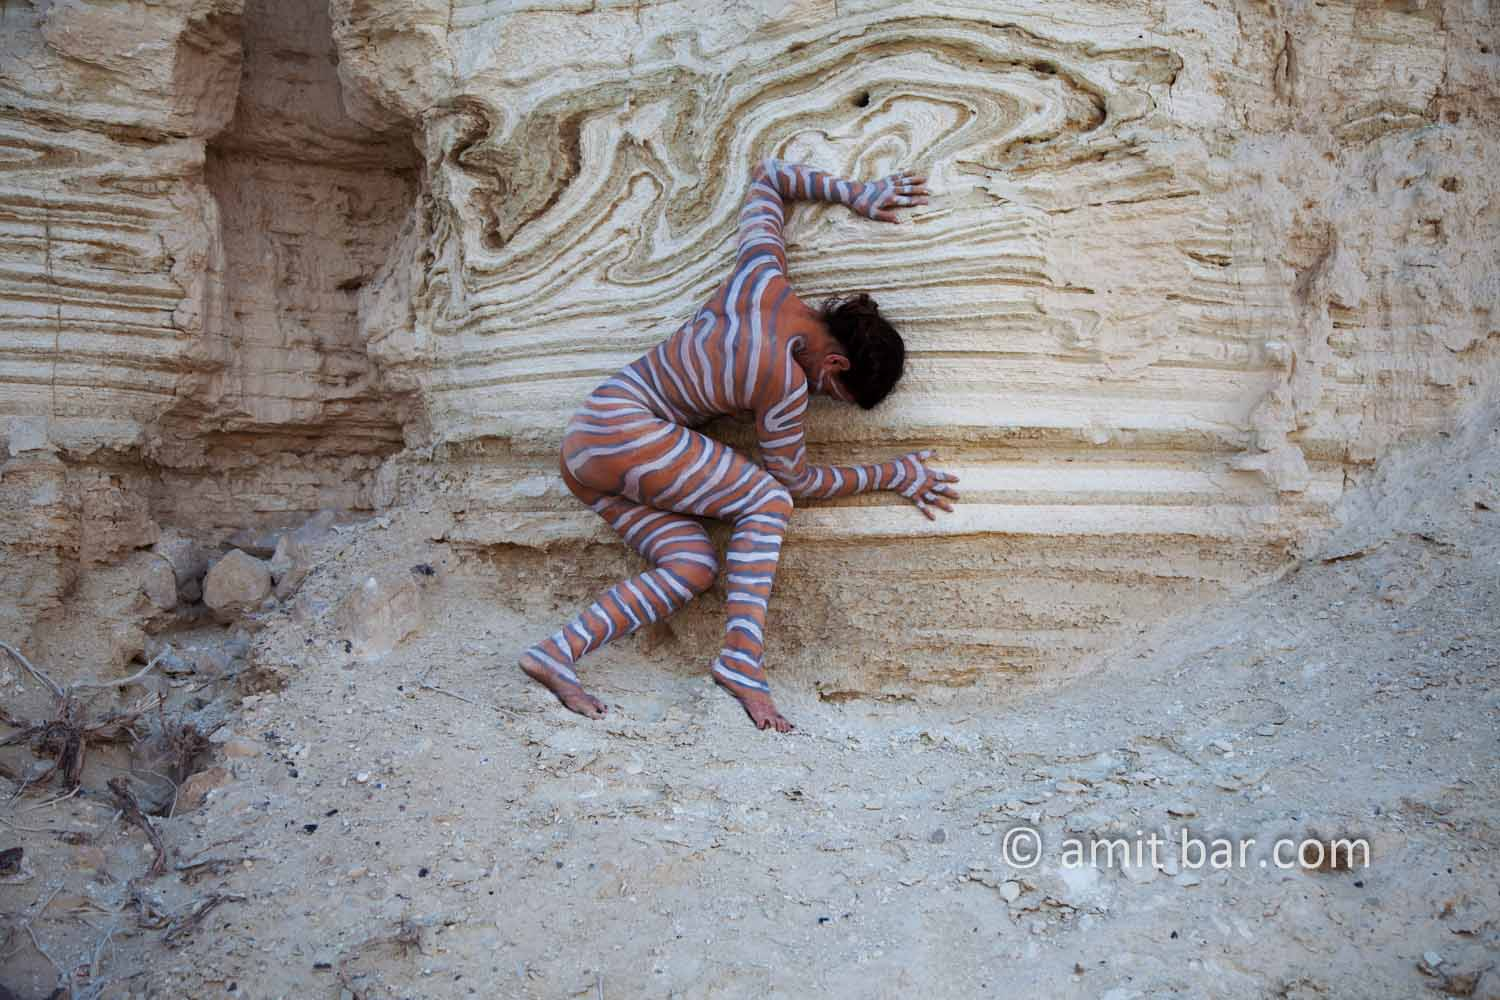 Nachal Prazim III: Body painted model at the desert of the Dead Sea, Israel.